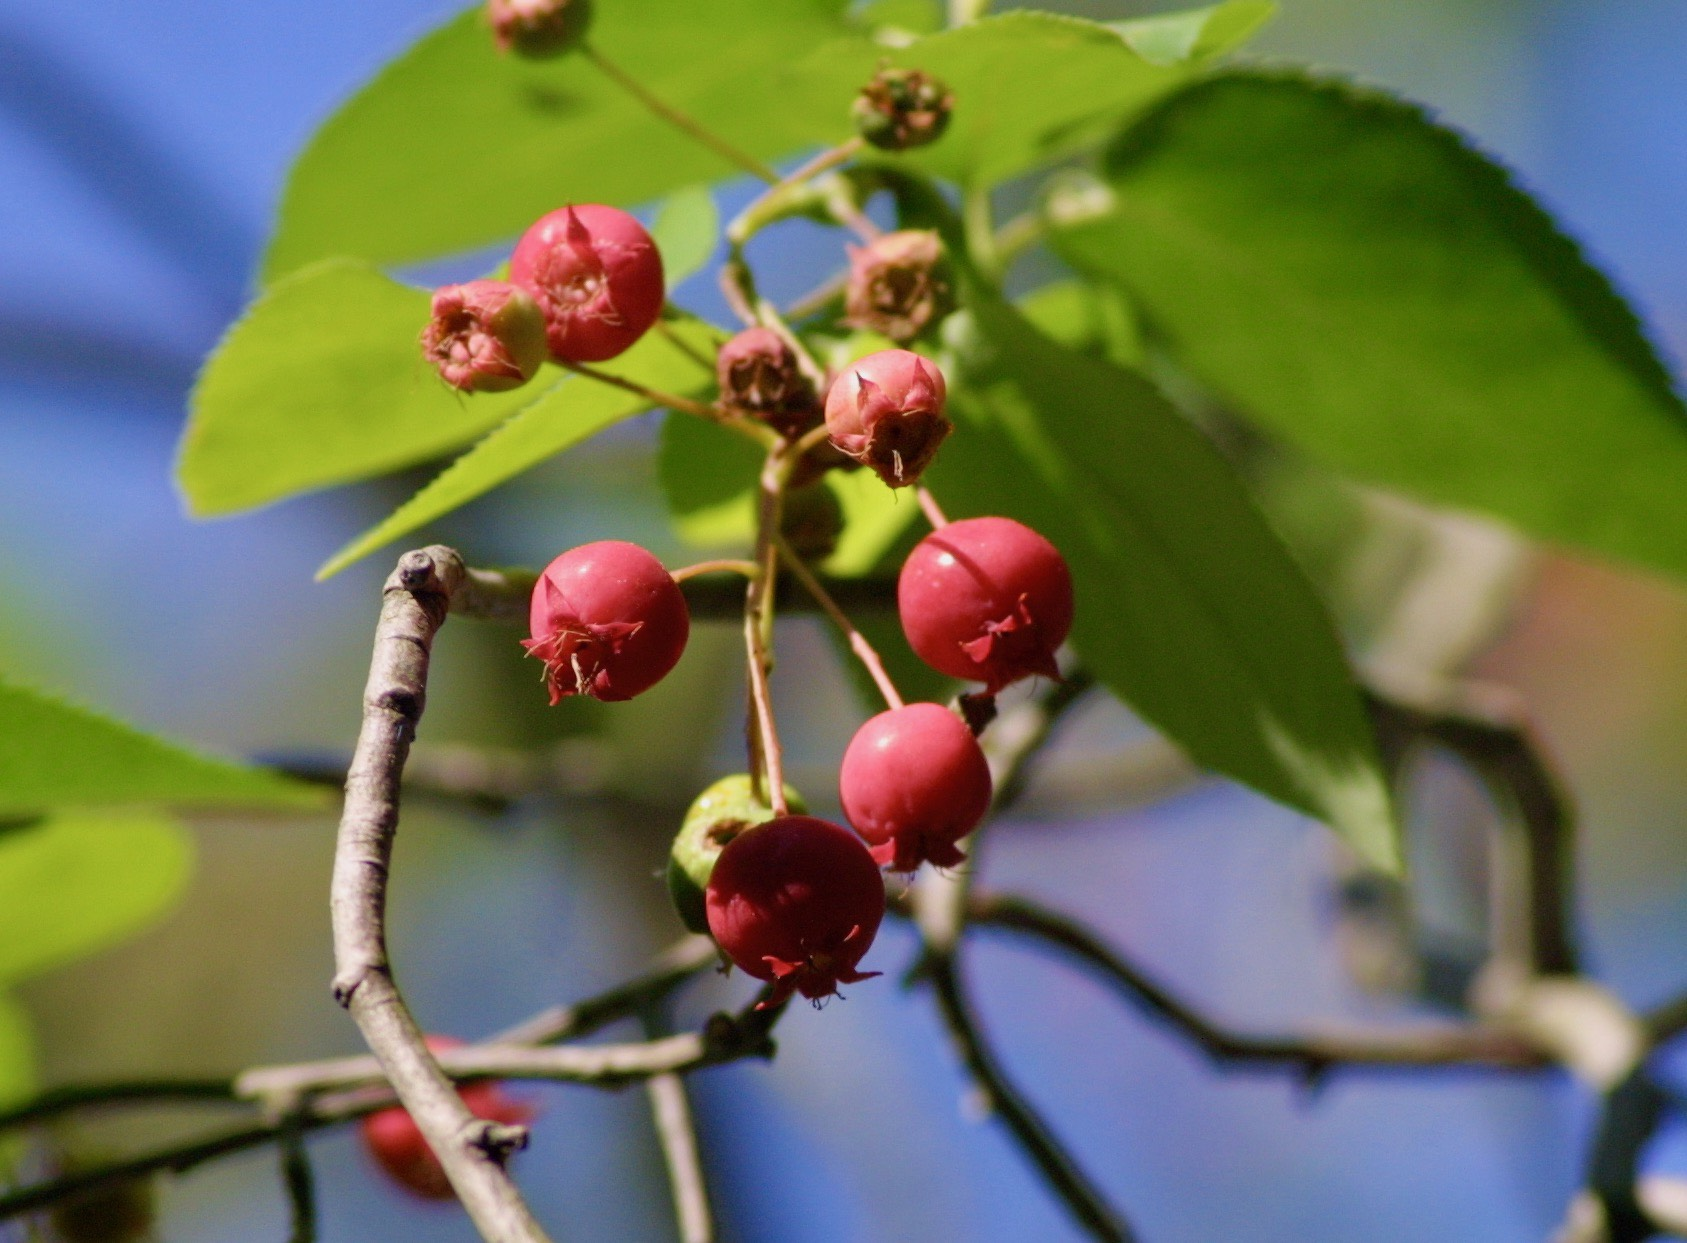 The Scientific Name is Amelanchier arborea. You will likely hear them called Downy Serviceberry, Shadbush, Shadtree, Sarvis Tree. This picture shows the Ripe fruits of Amelanchier arborea